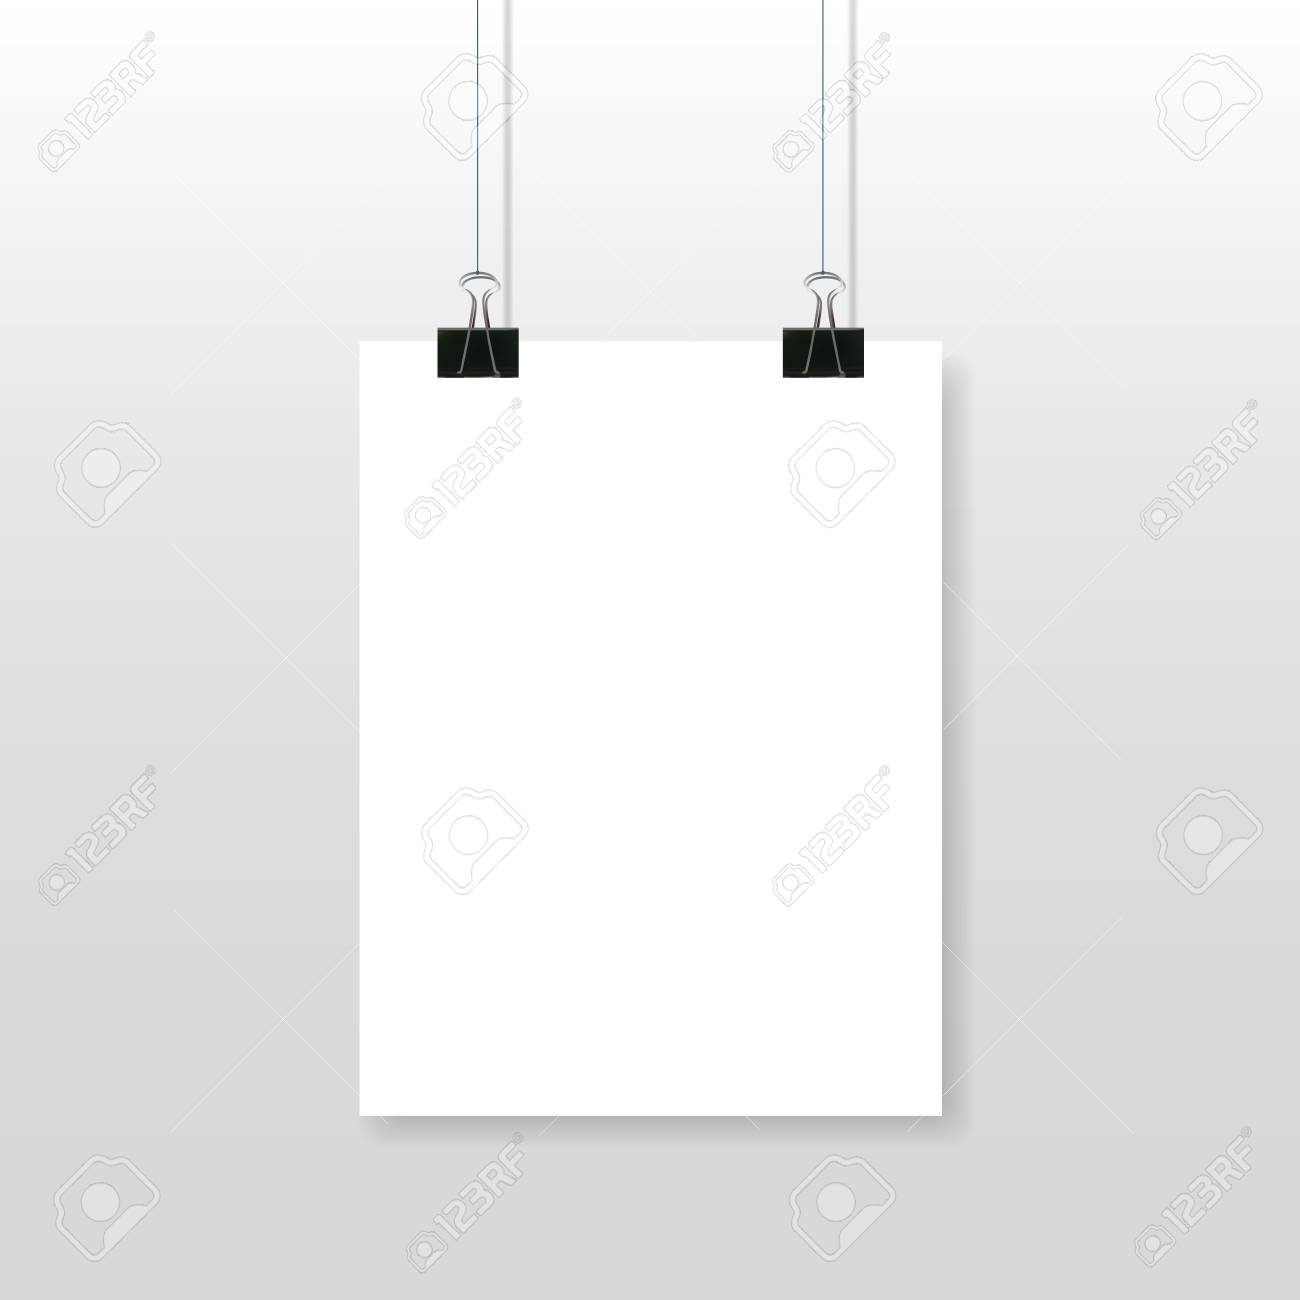 paper poster template blank white page with binder clips hanging